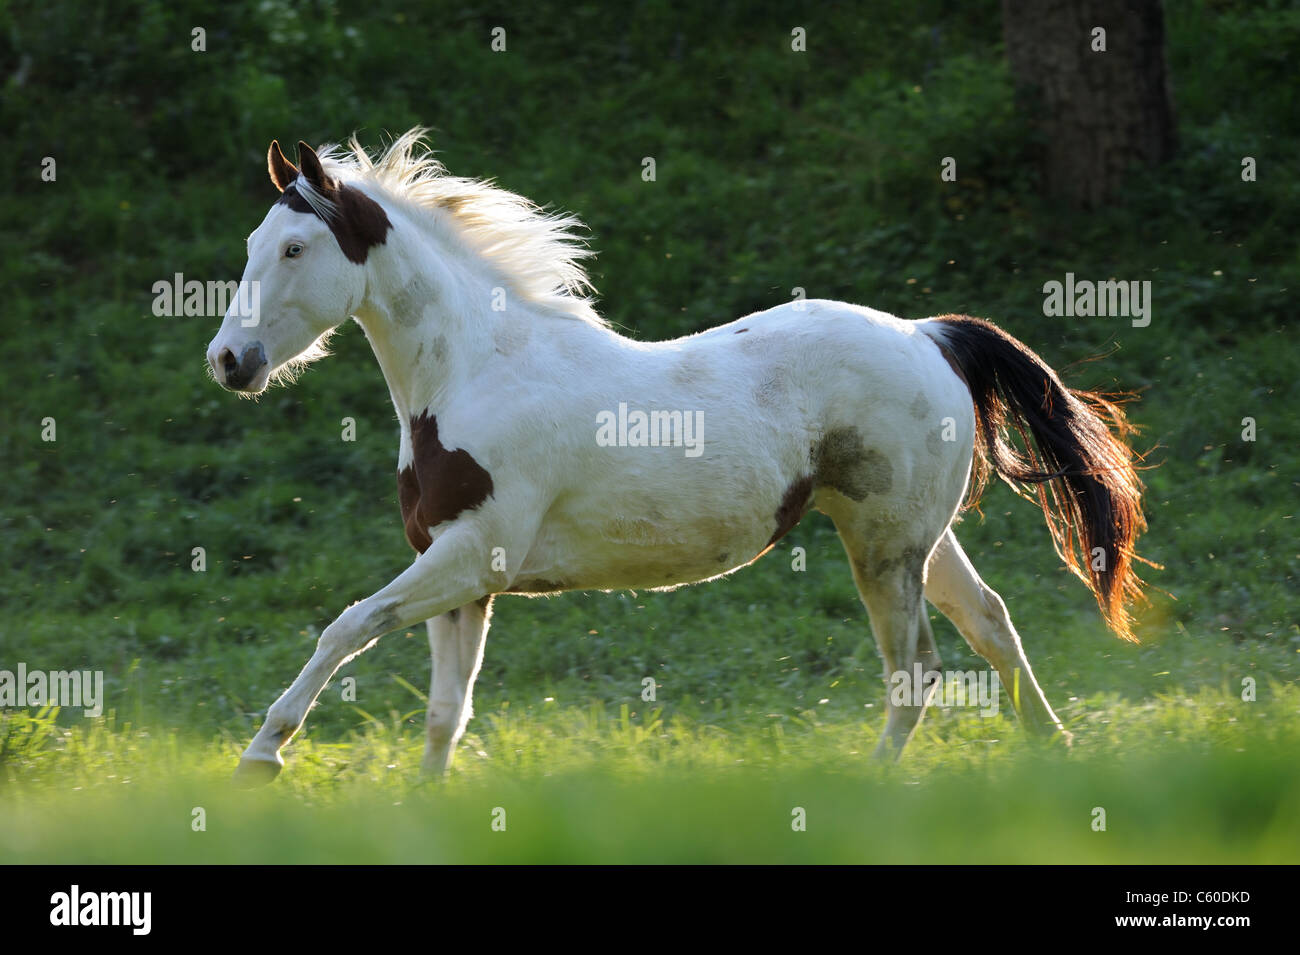 Paint Horse (Equus ferus caballus). Mare in a gallop on a meadow. - Stock Image